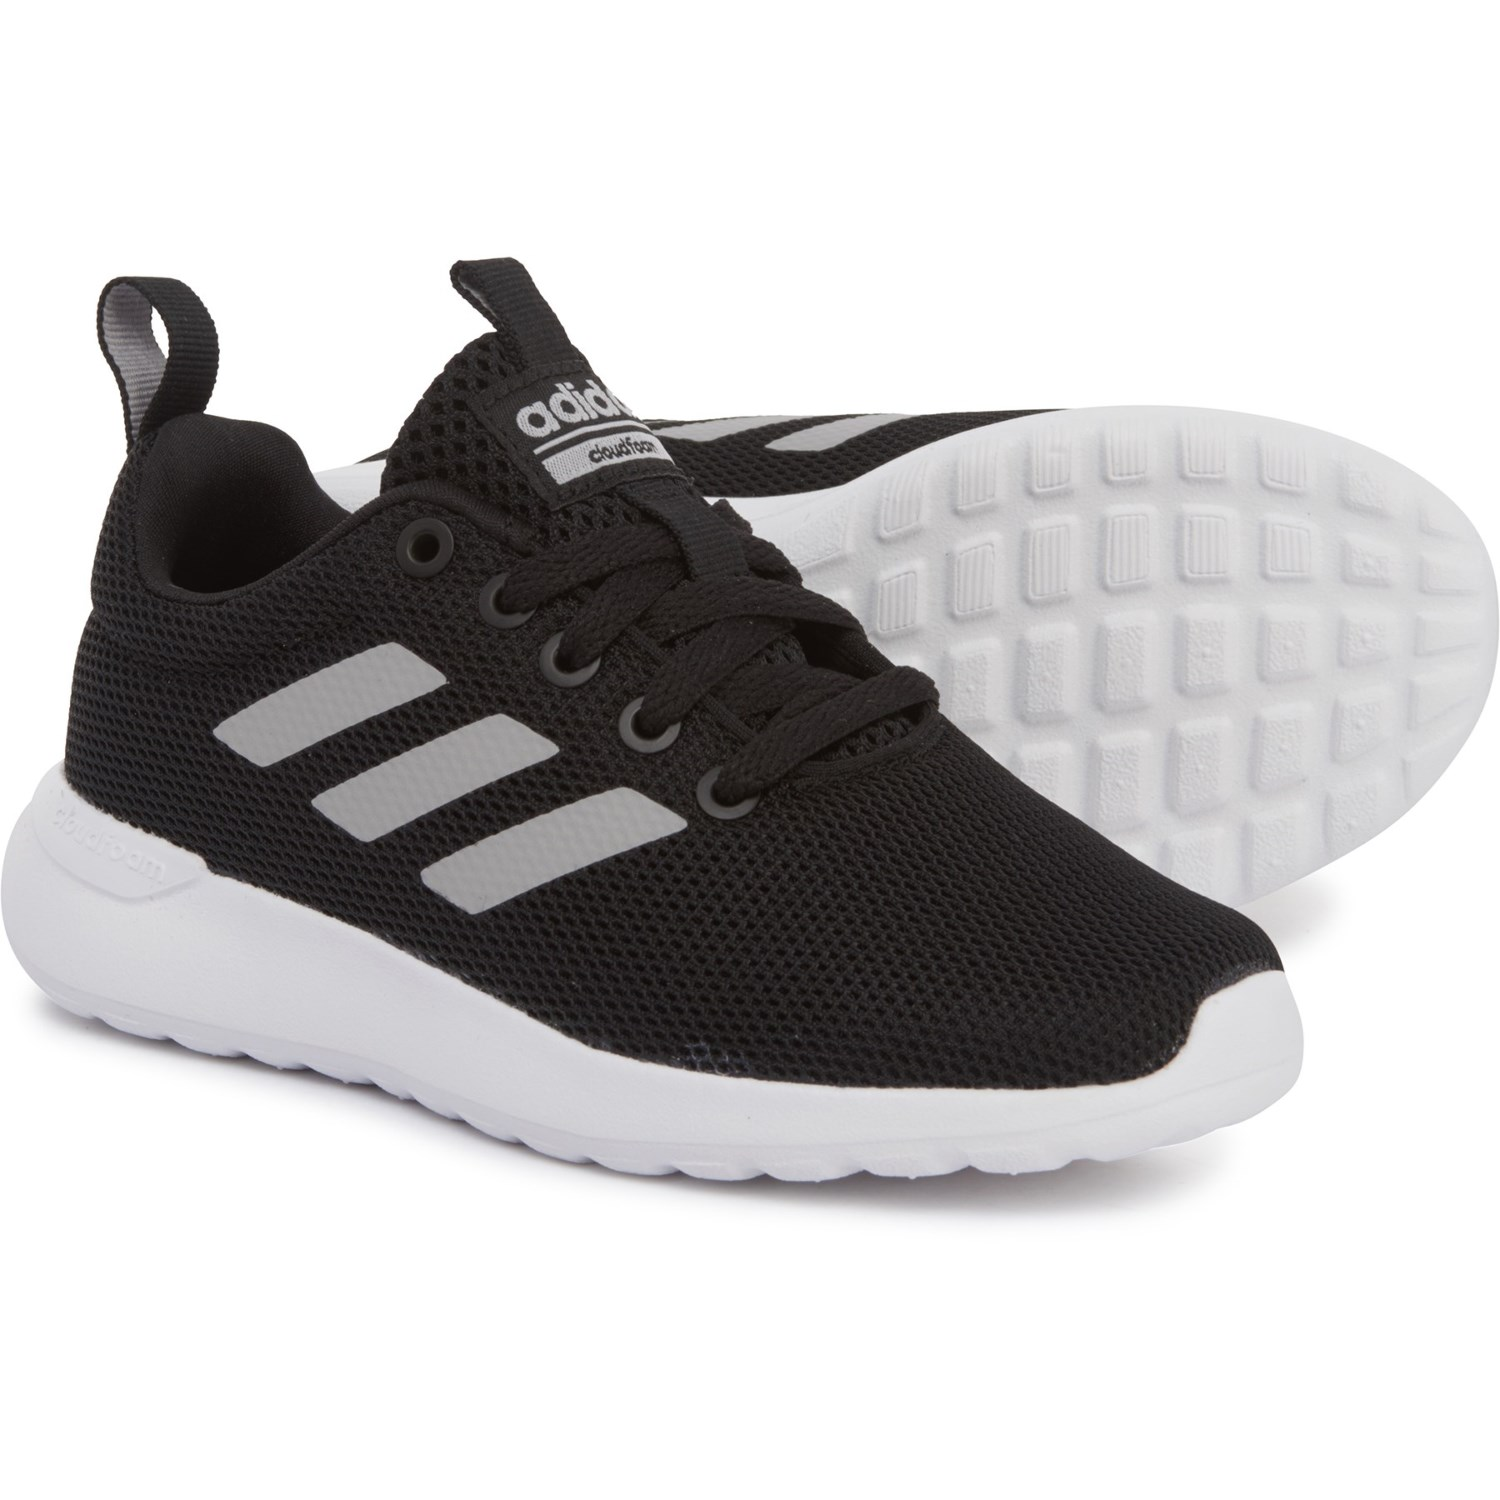 adidas Lite Racer Shoes (For Boys) Save 14%